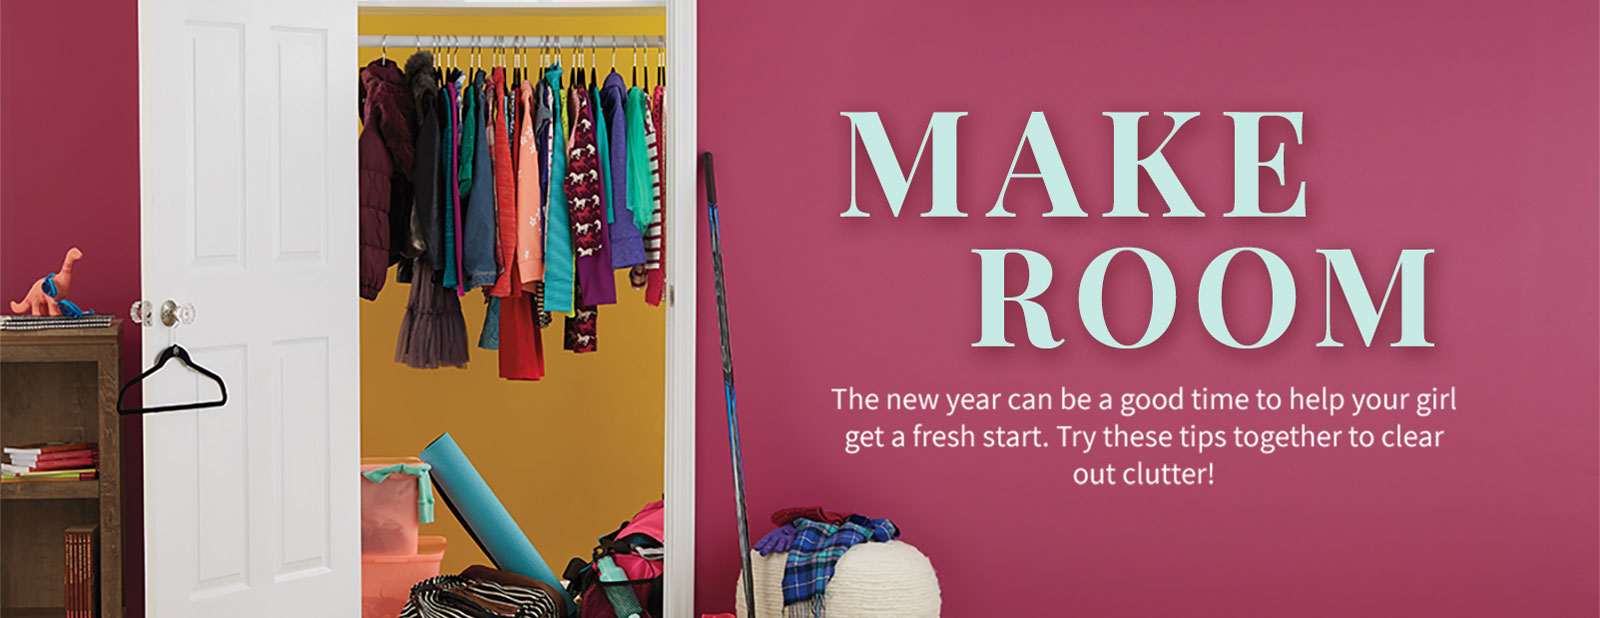 The new year can be a good time to help your girl get a fresh start. Try these tips together to clear out clutter!